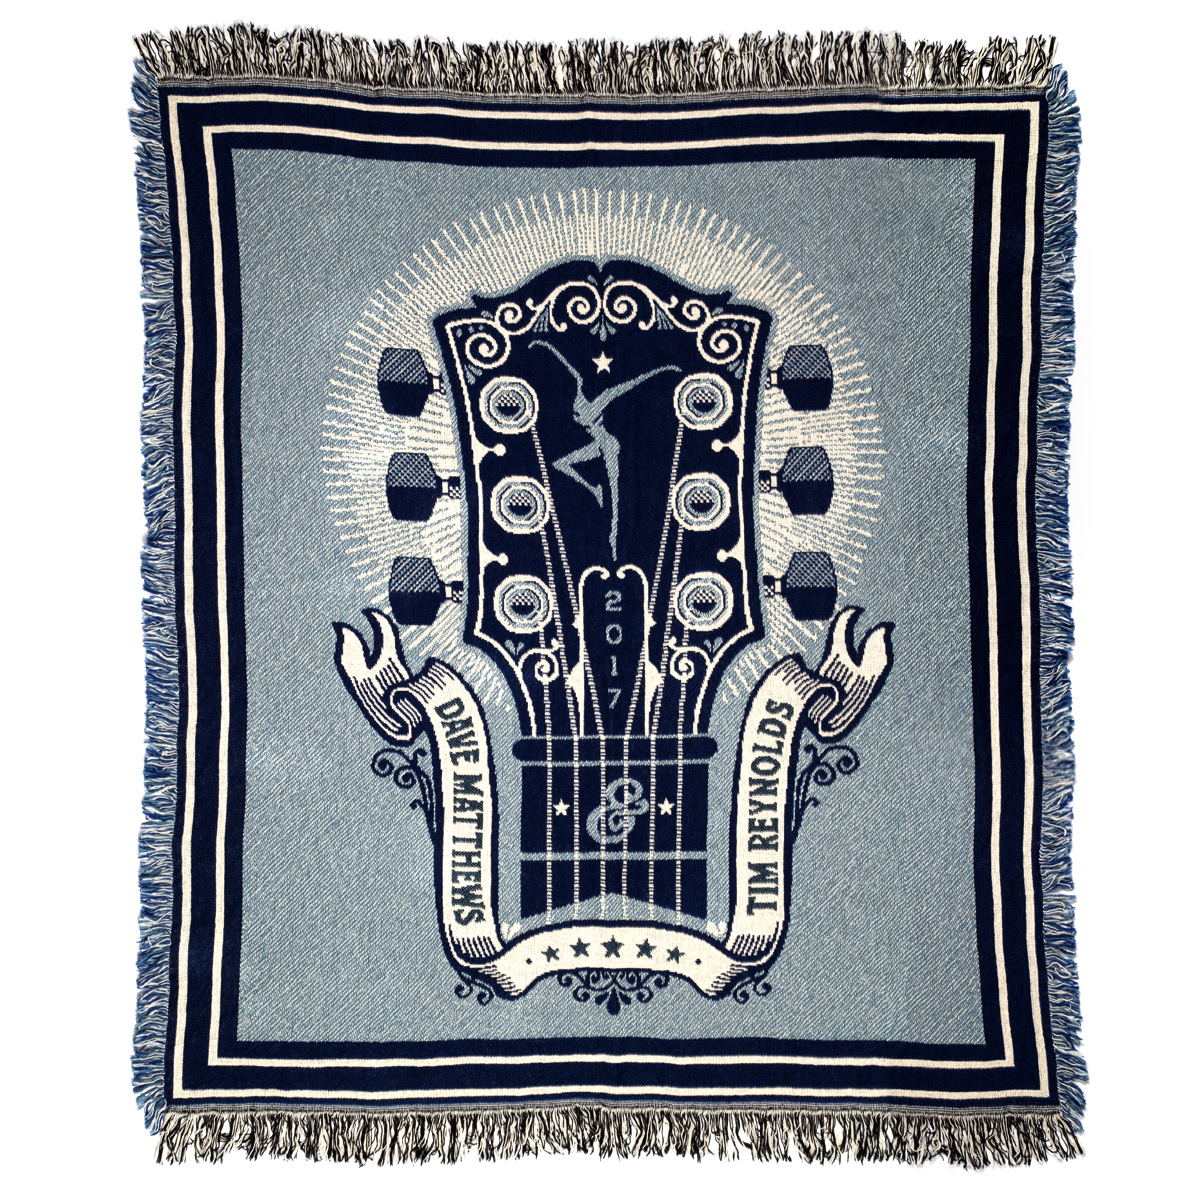 Dave and Tim 2017 Tour Blanket